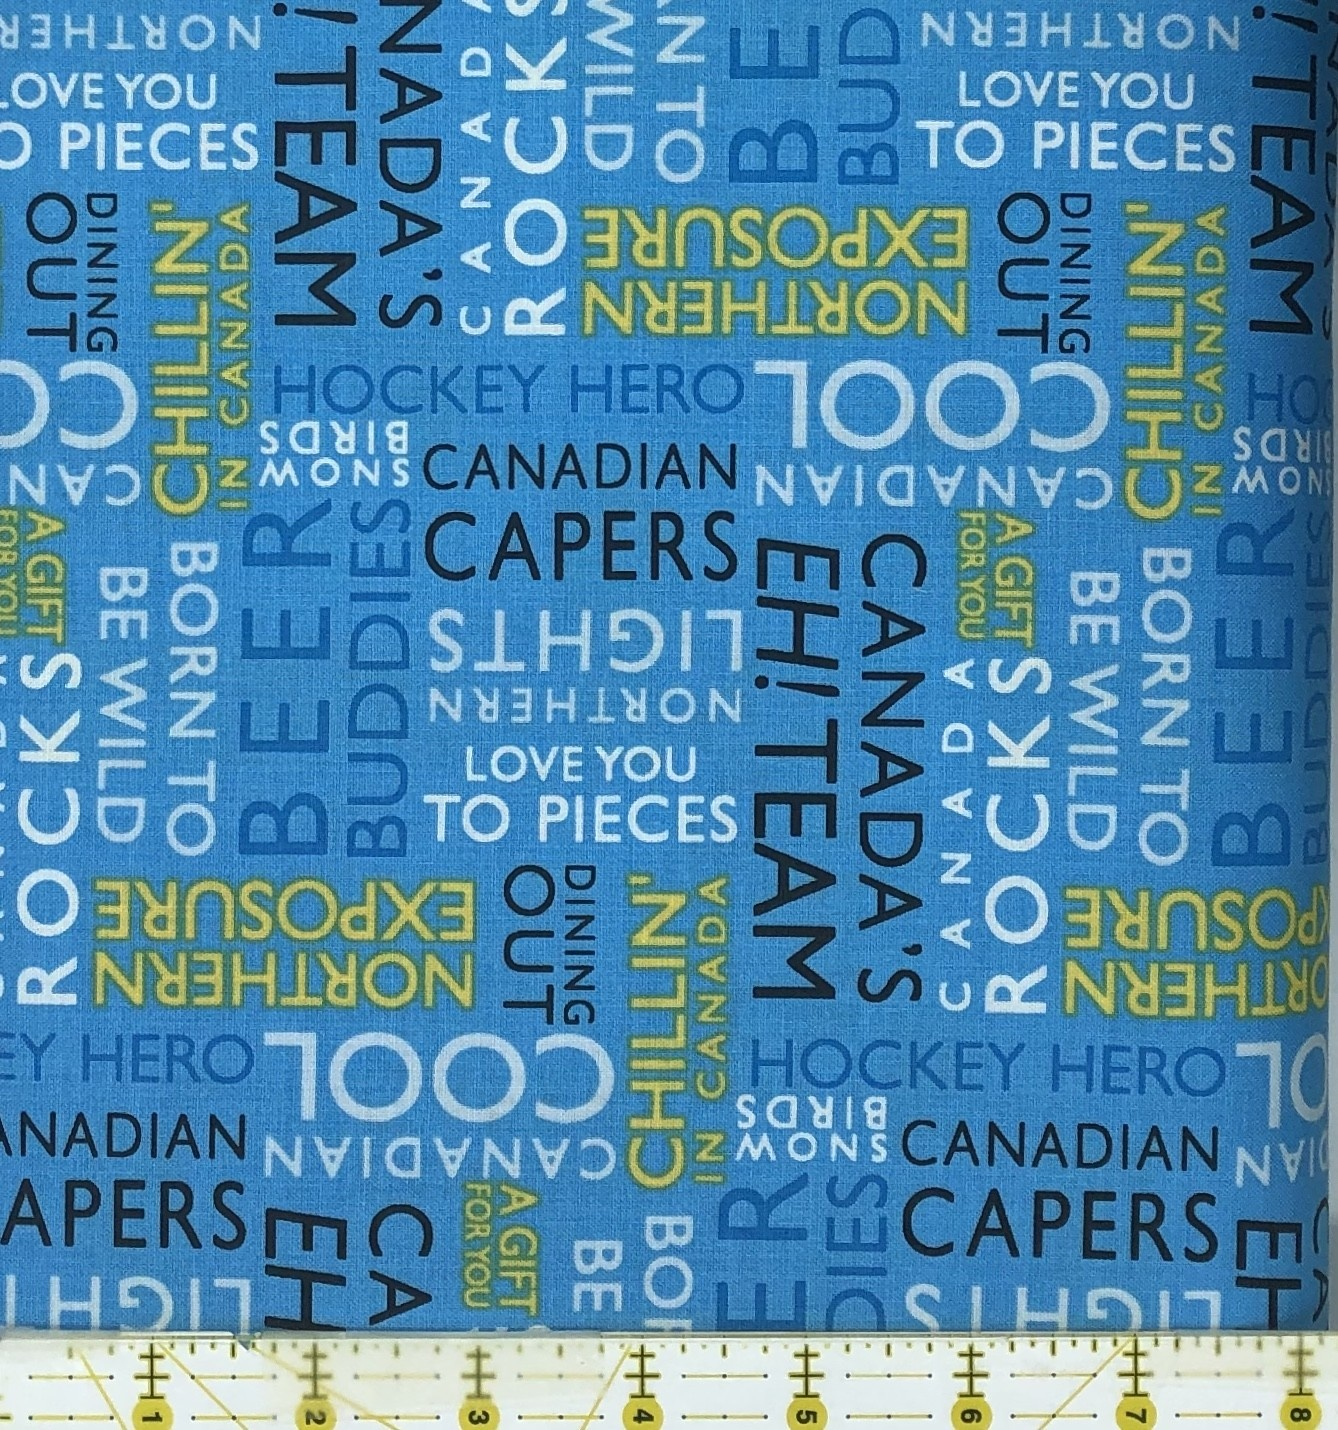 WILMINGTON PRINTS CANADIAN CAPERS WORDS ON BLUE 495, PER CM OR $21/M